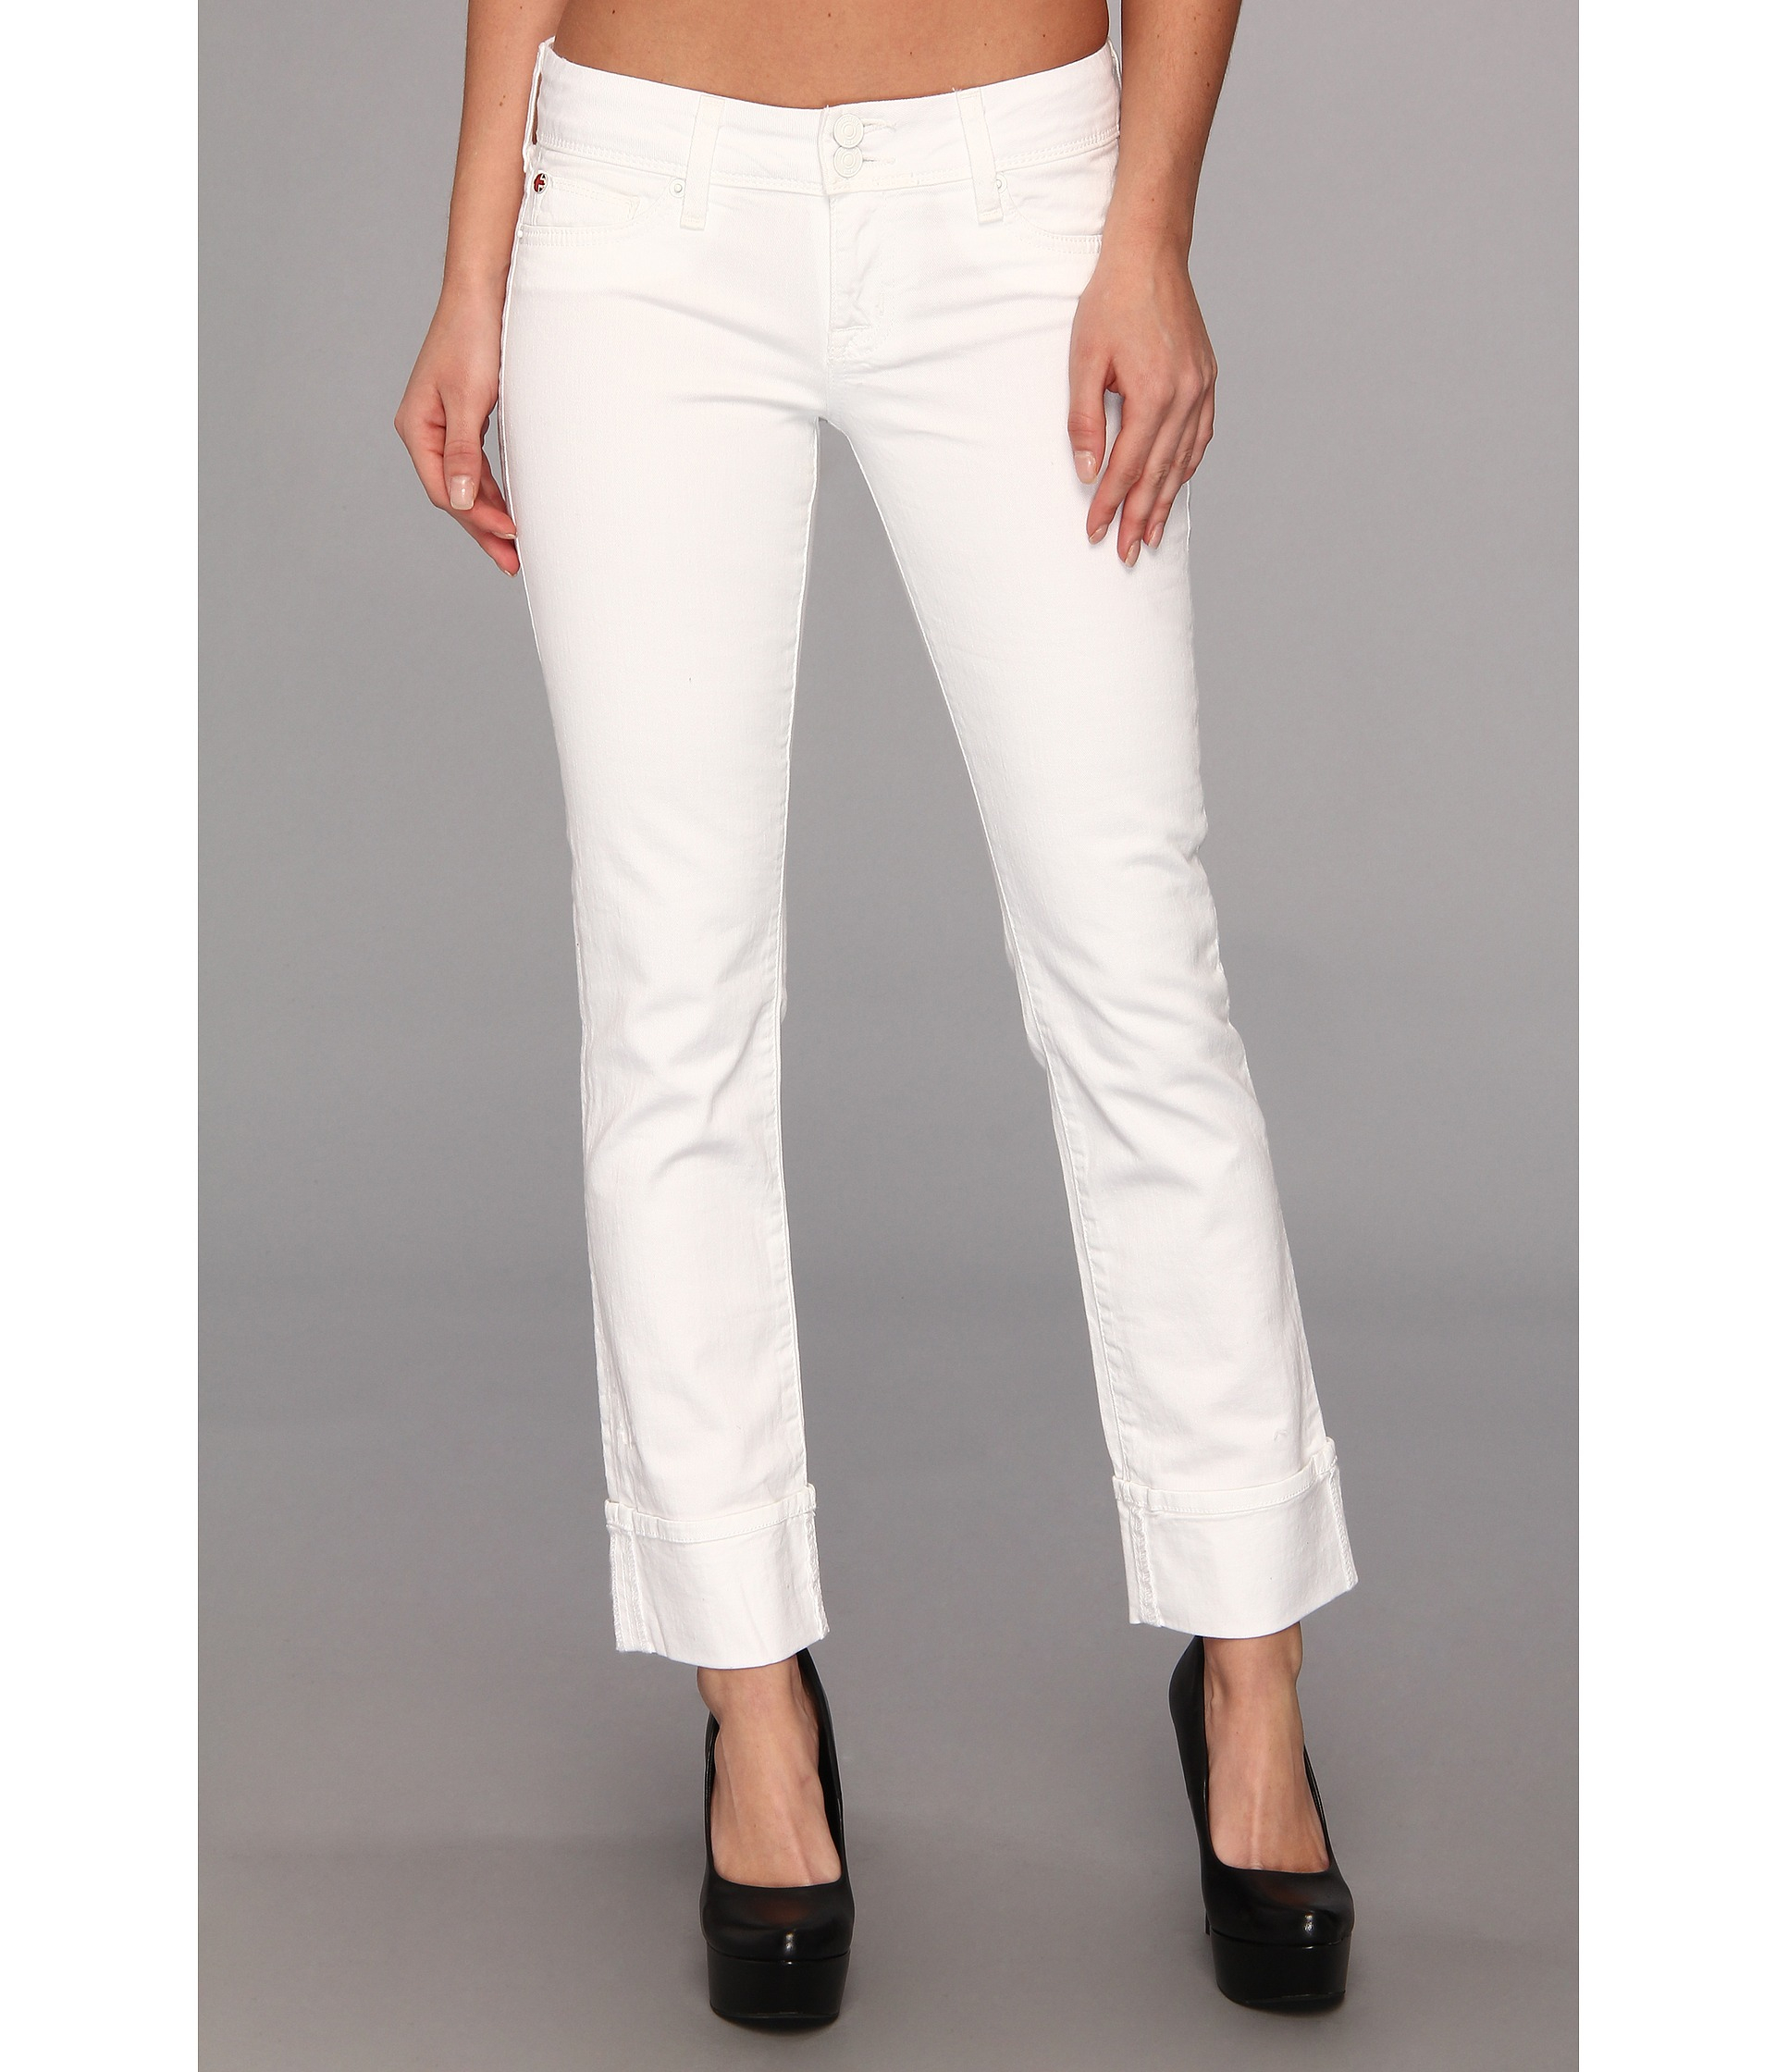 436cfac8531 Hudson Jeans Ginny Straight Crop W/ Cuff In White in White - Lyst